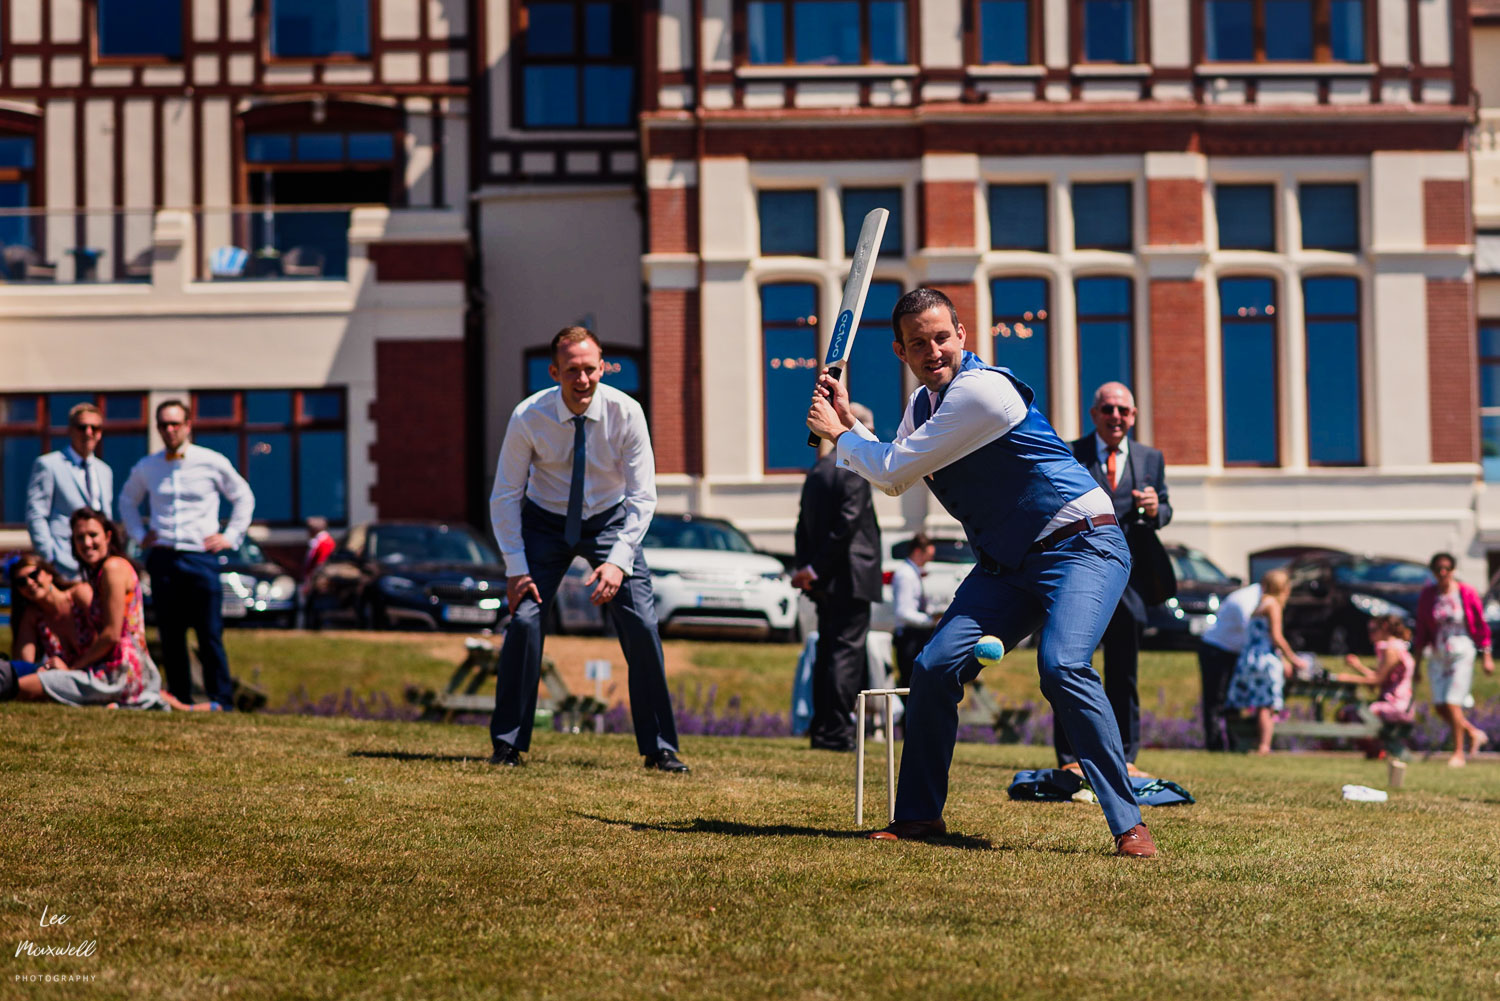 Best man playing cricket